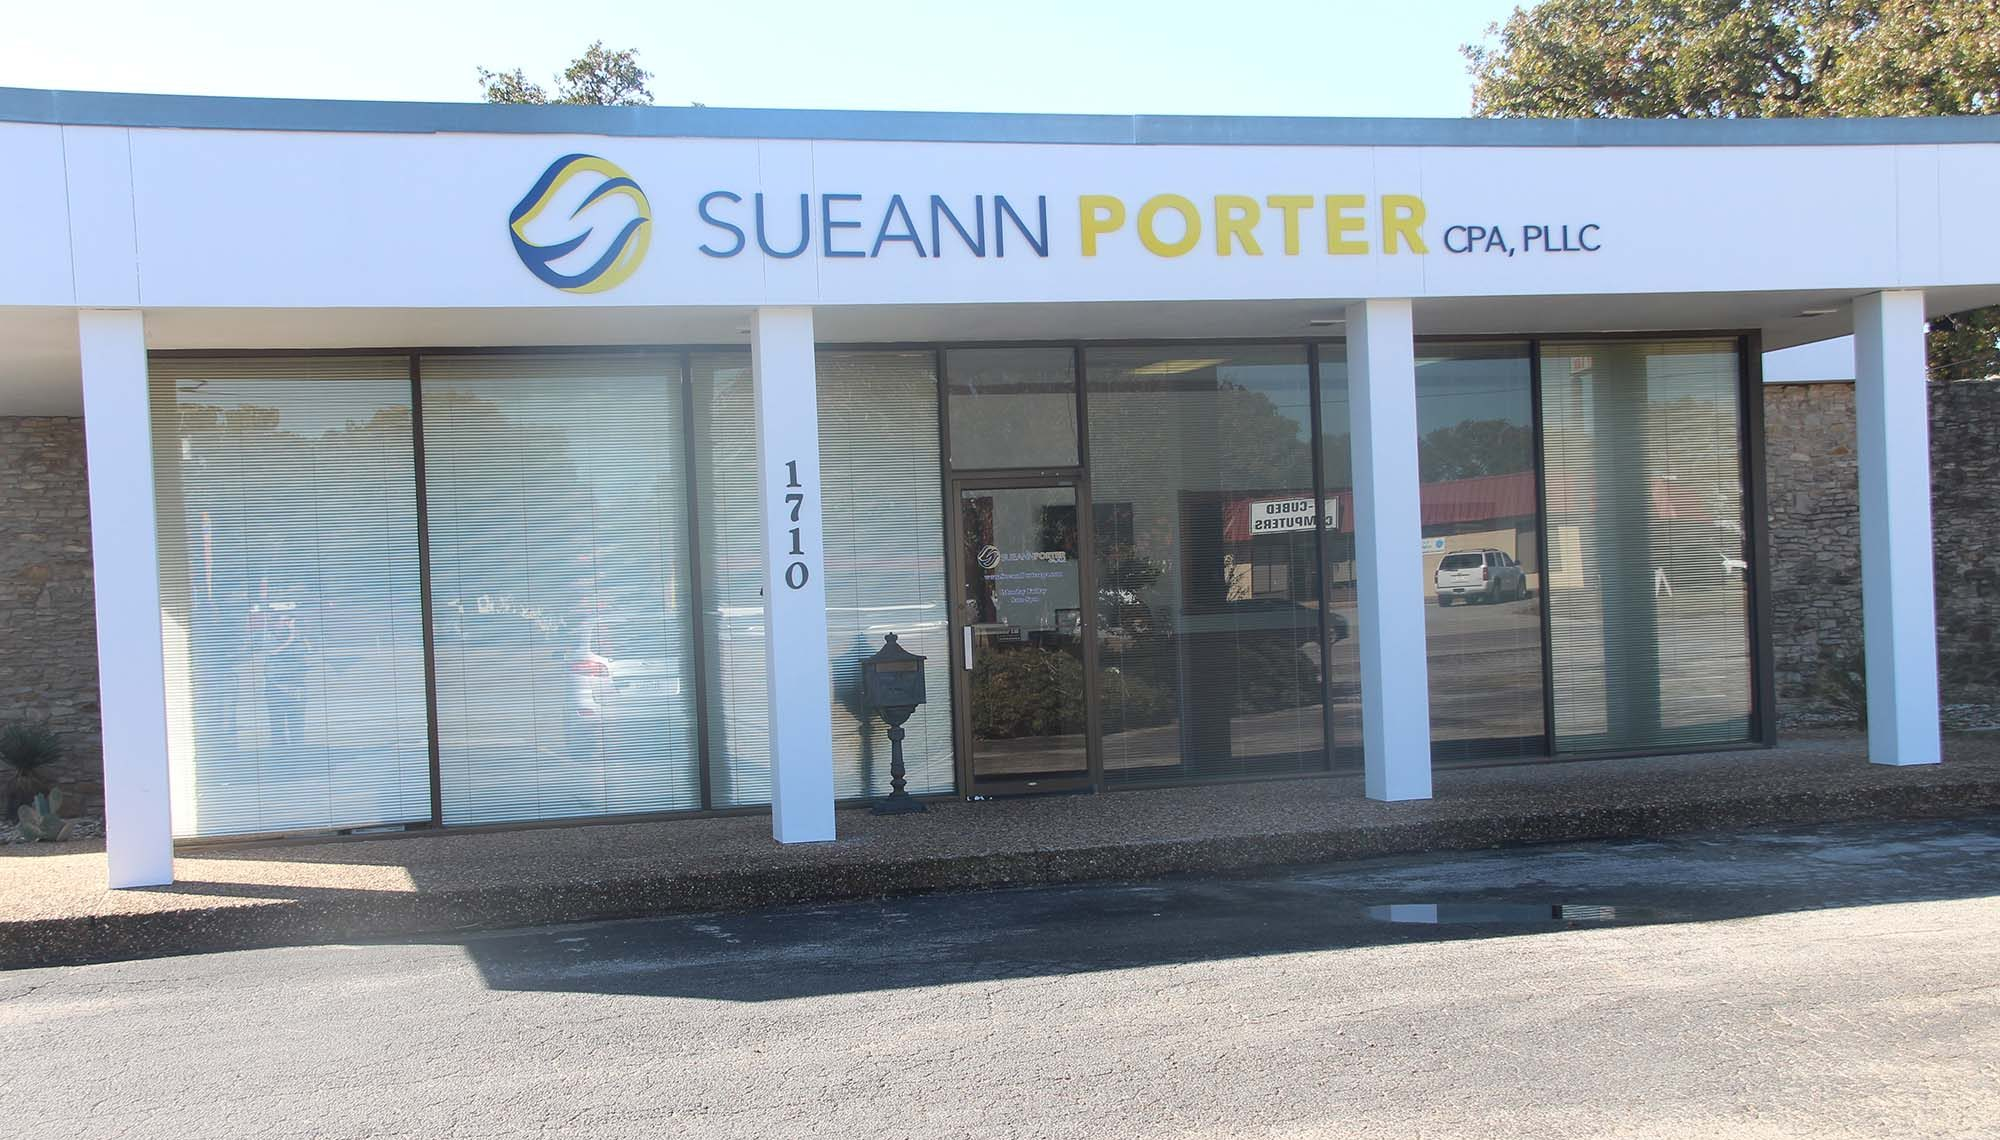 A storefront image of Sueann Porter CPA, PLLC in Stephenville, Texas